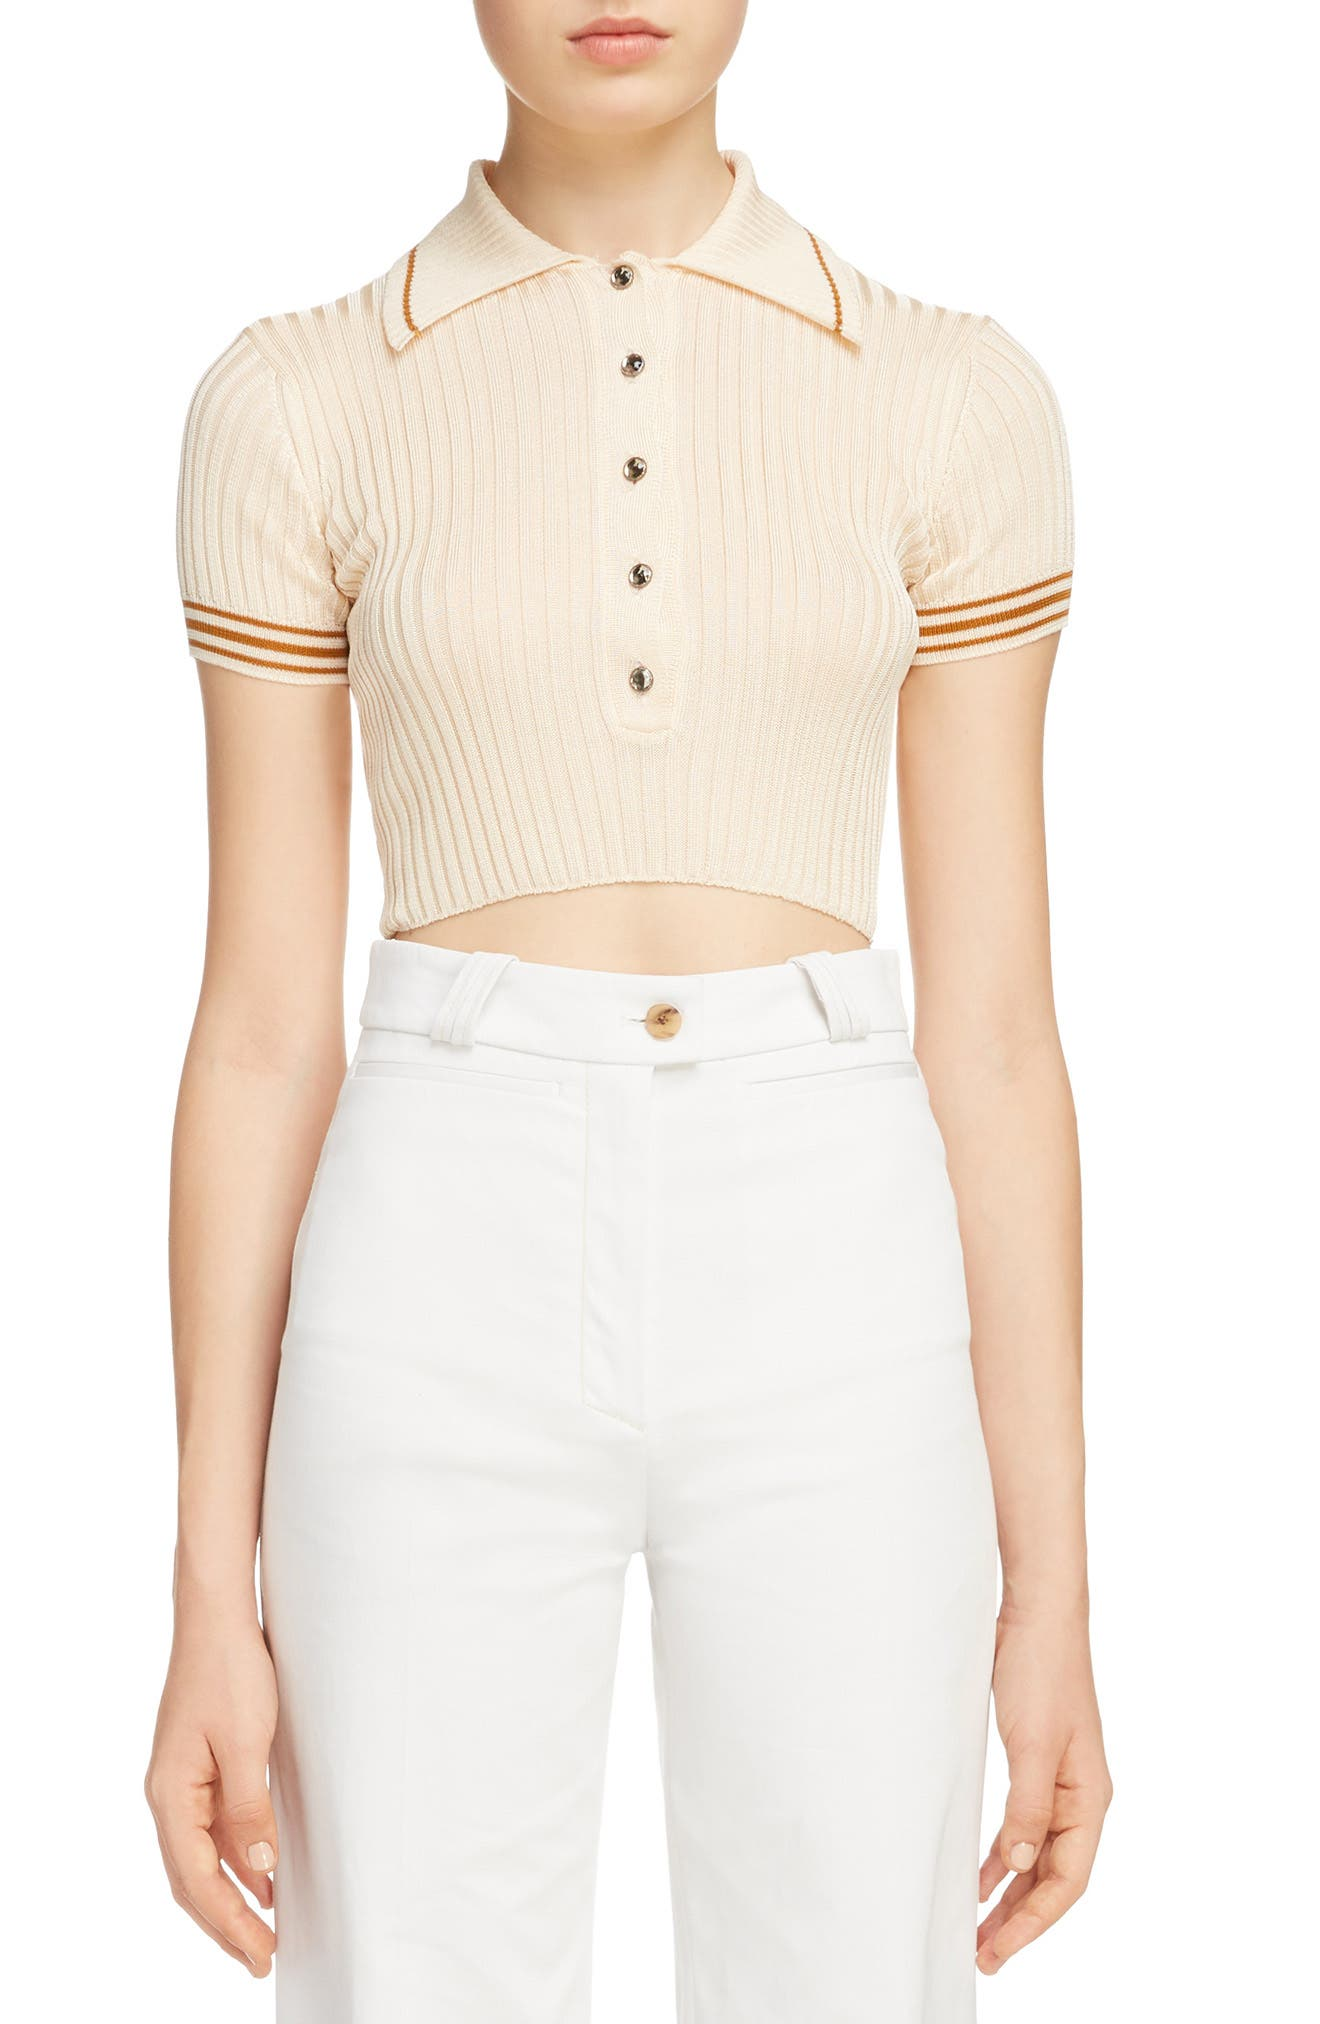 Shanita Lingerie Crop Polo Sweater,                             Main thumbnail 1, color,                             Ivory White/ Tobacco Stripe